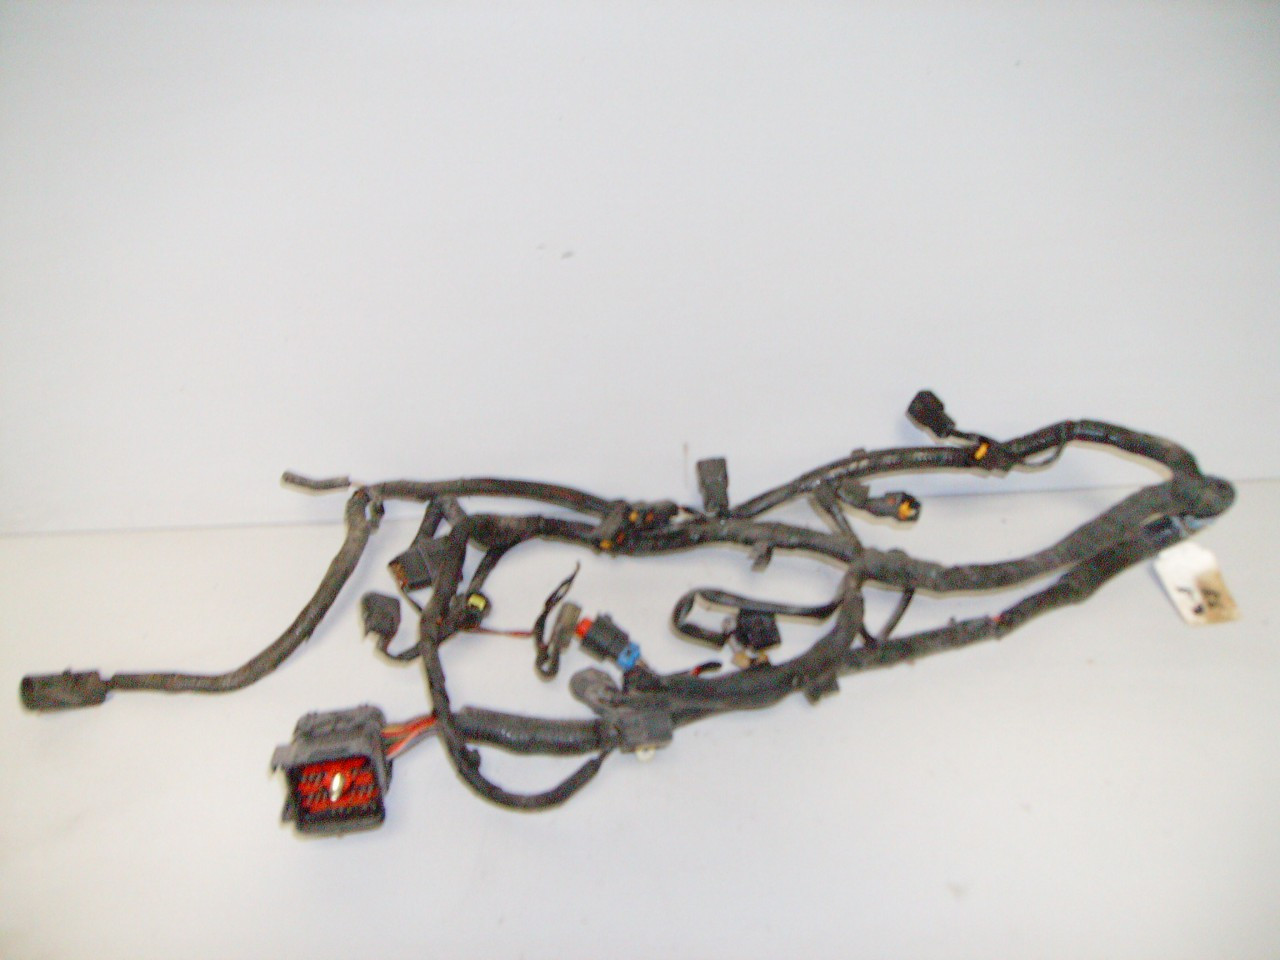 1996 1998 Ford Mustang 38 Engine Injection Wire Harness Lx V6 Vw Subaru Wiring Image 1